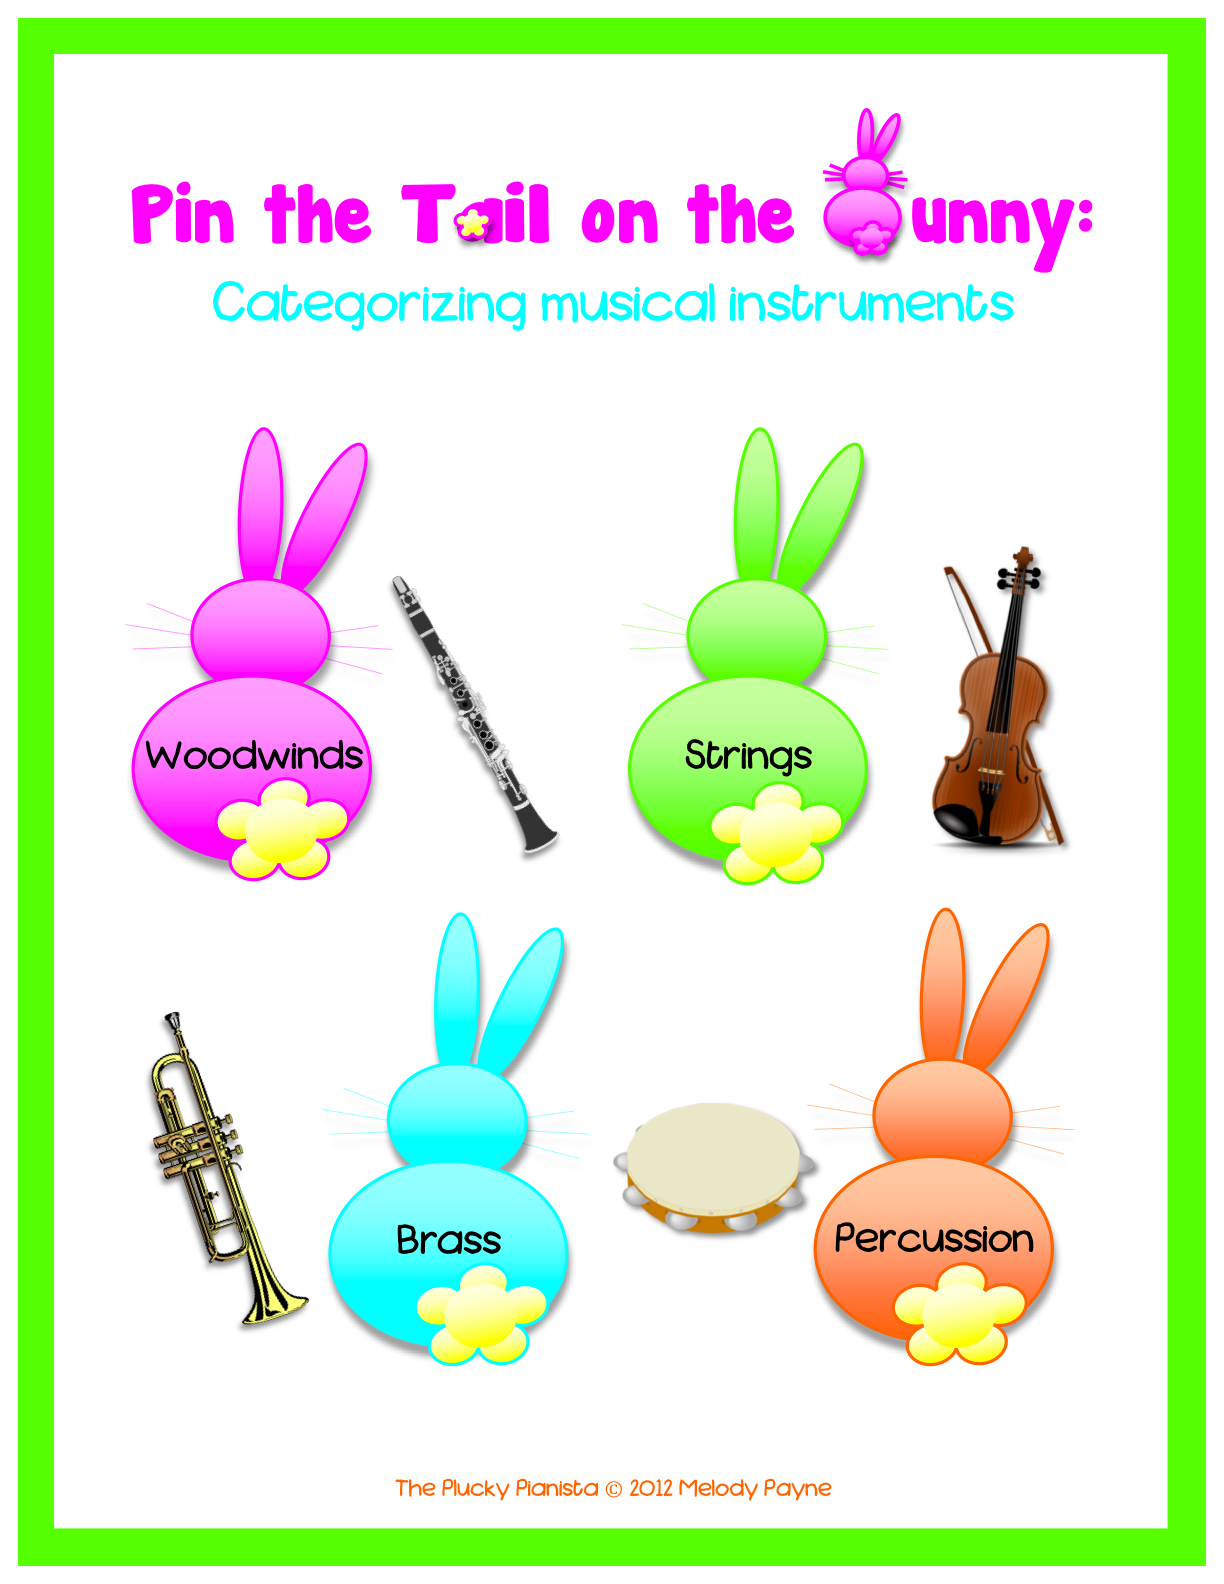 pin the tail on the dinosaur template - pin the tail on the bunny printable craftbnb